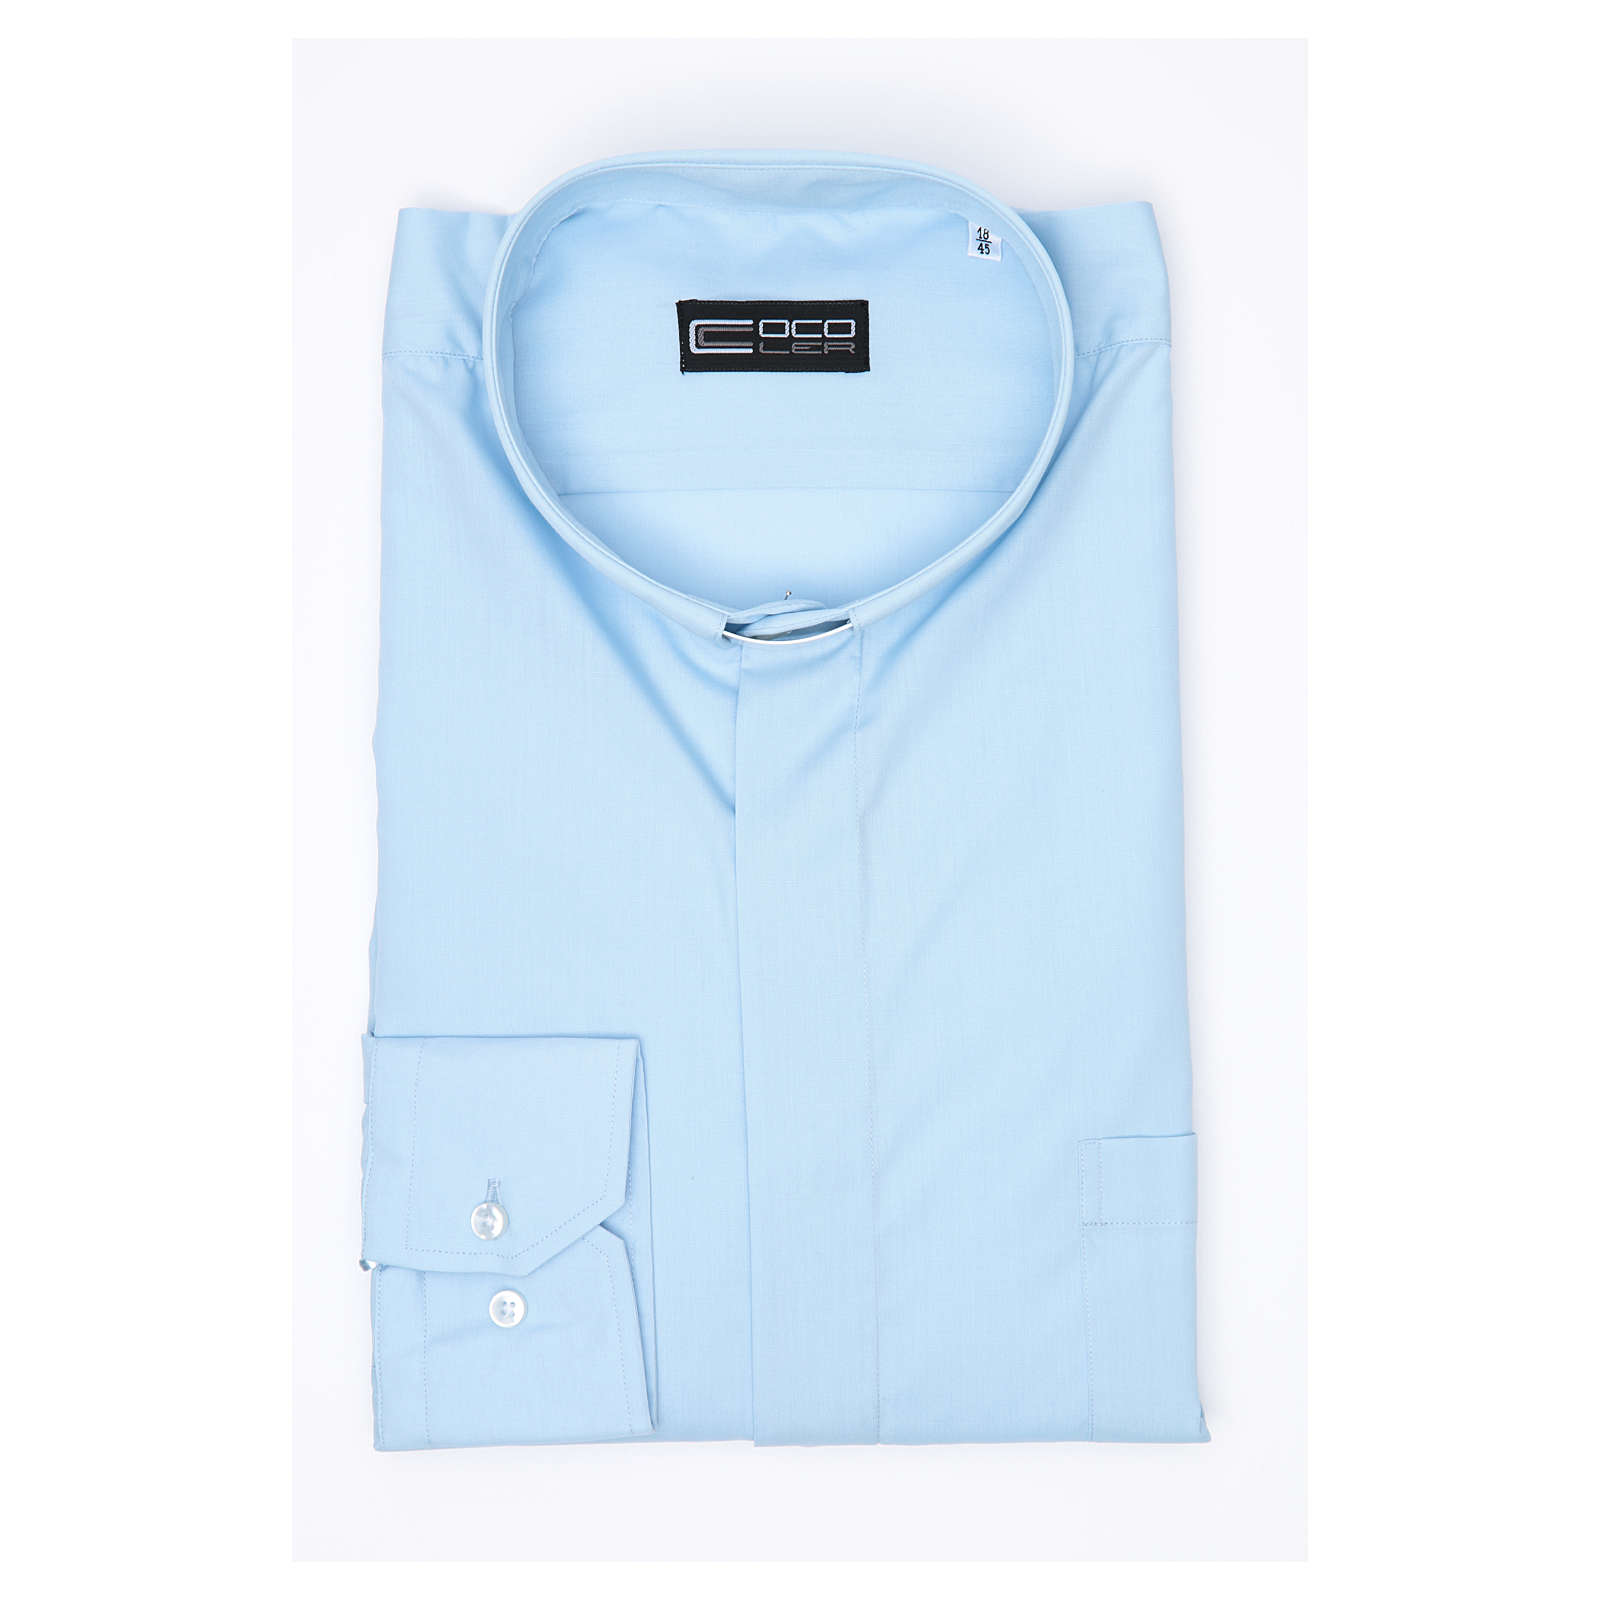 100 Cotton Clerical Shirts Bcd Tofu House